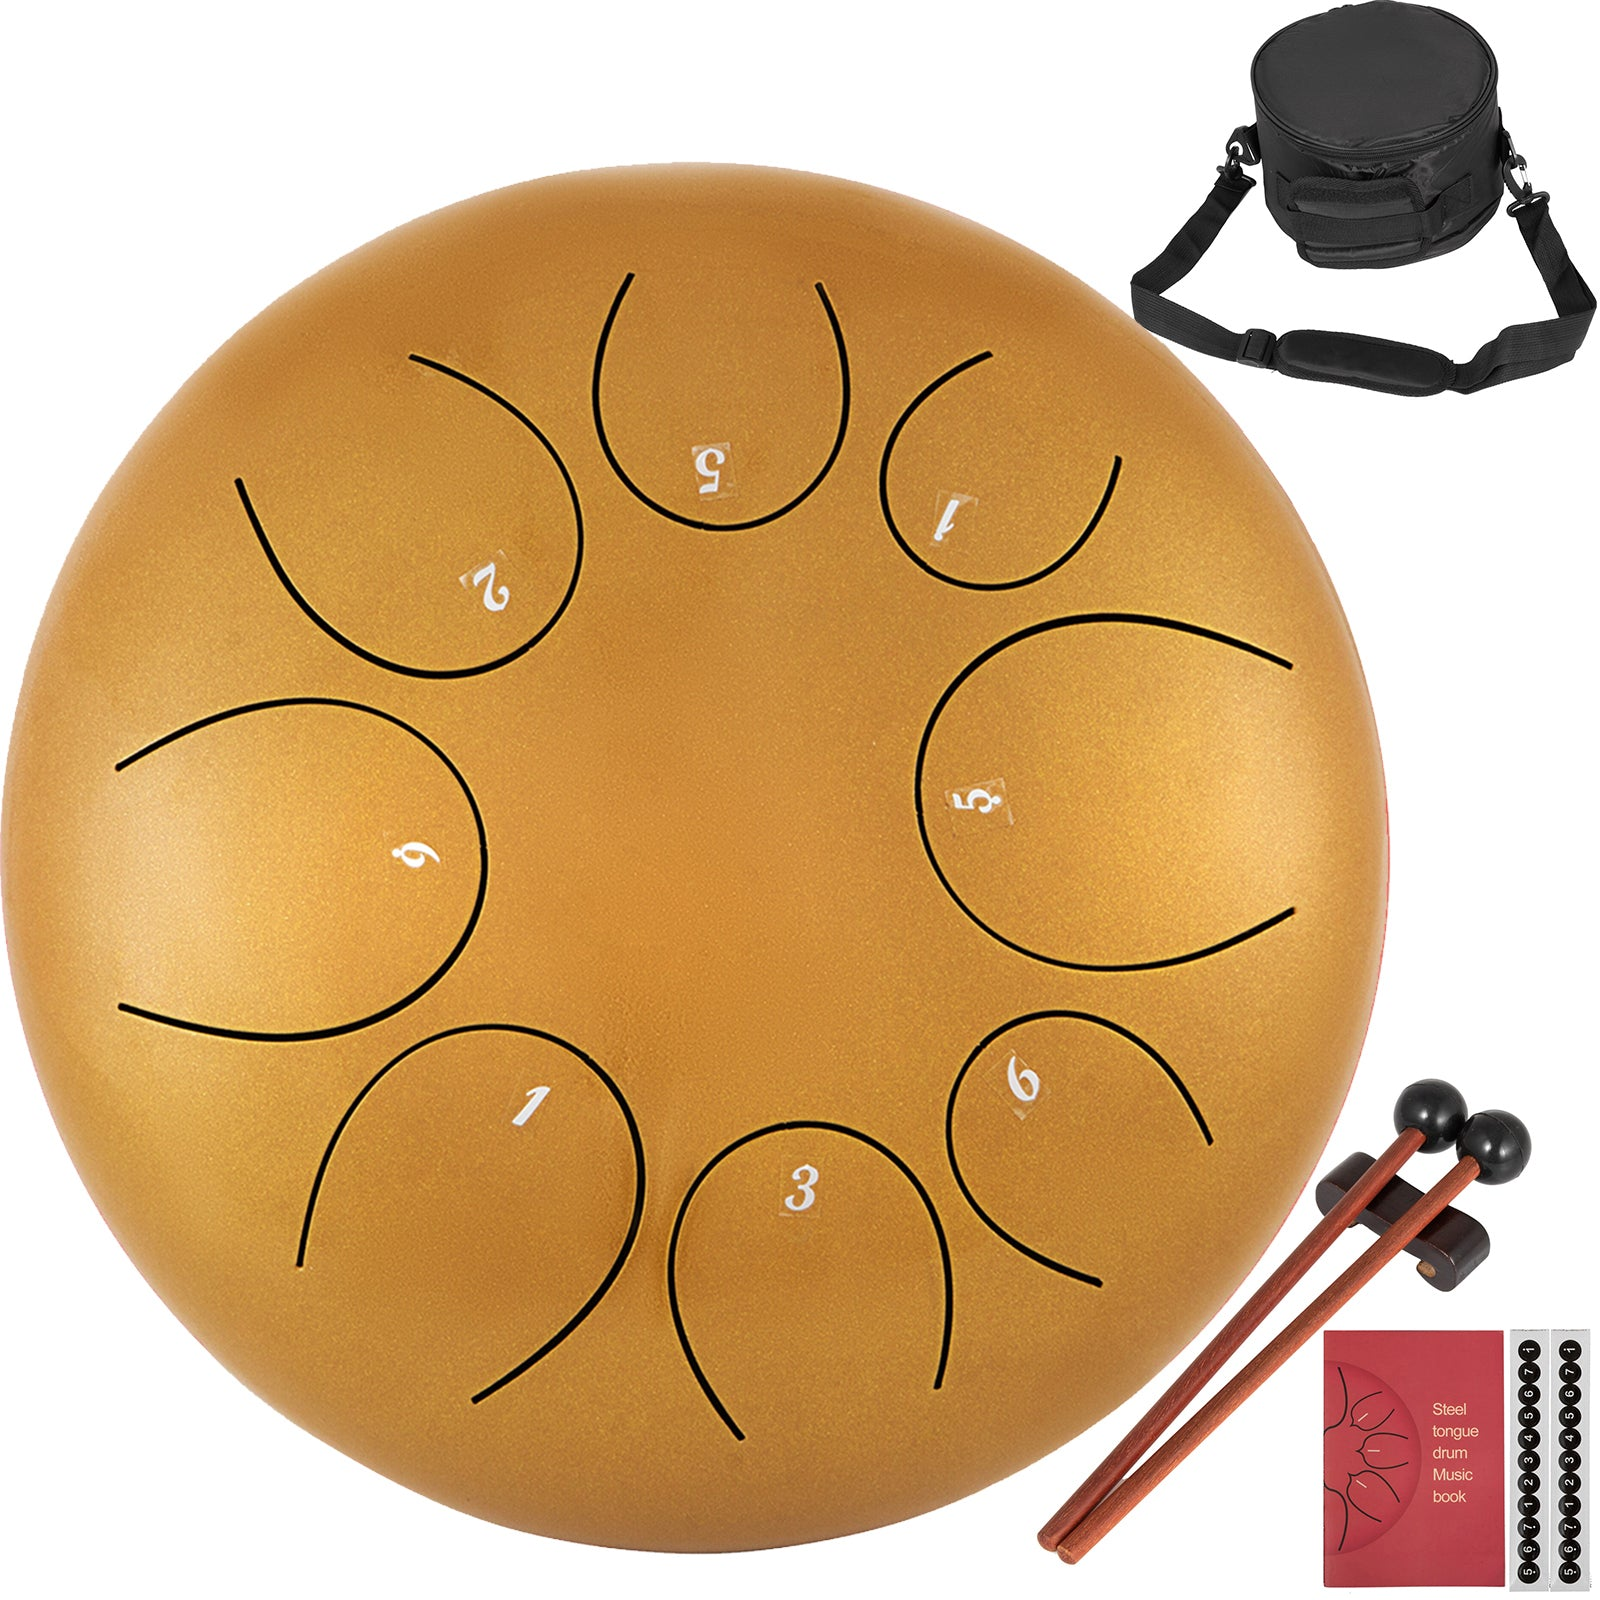 "10"" 8 Notes Steel Tongue Drum Handpan Hand Drums Percussion Instrument"